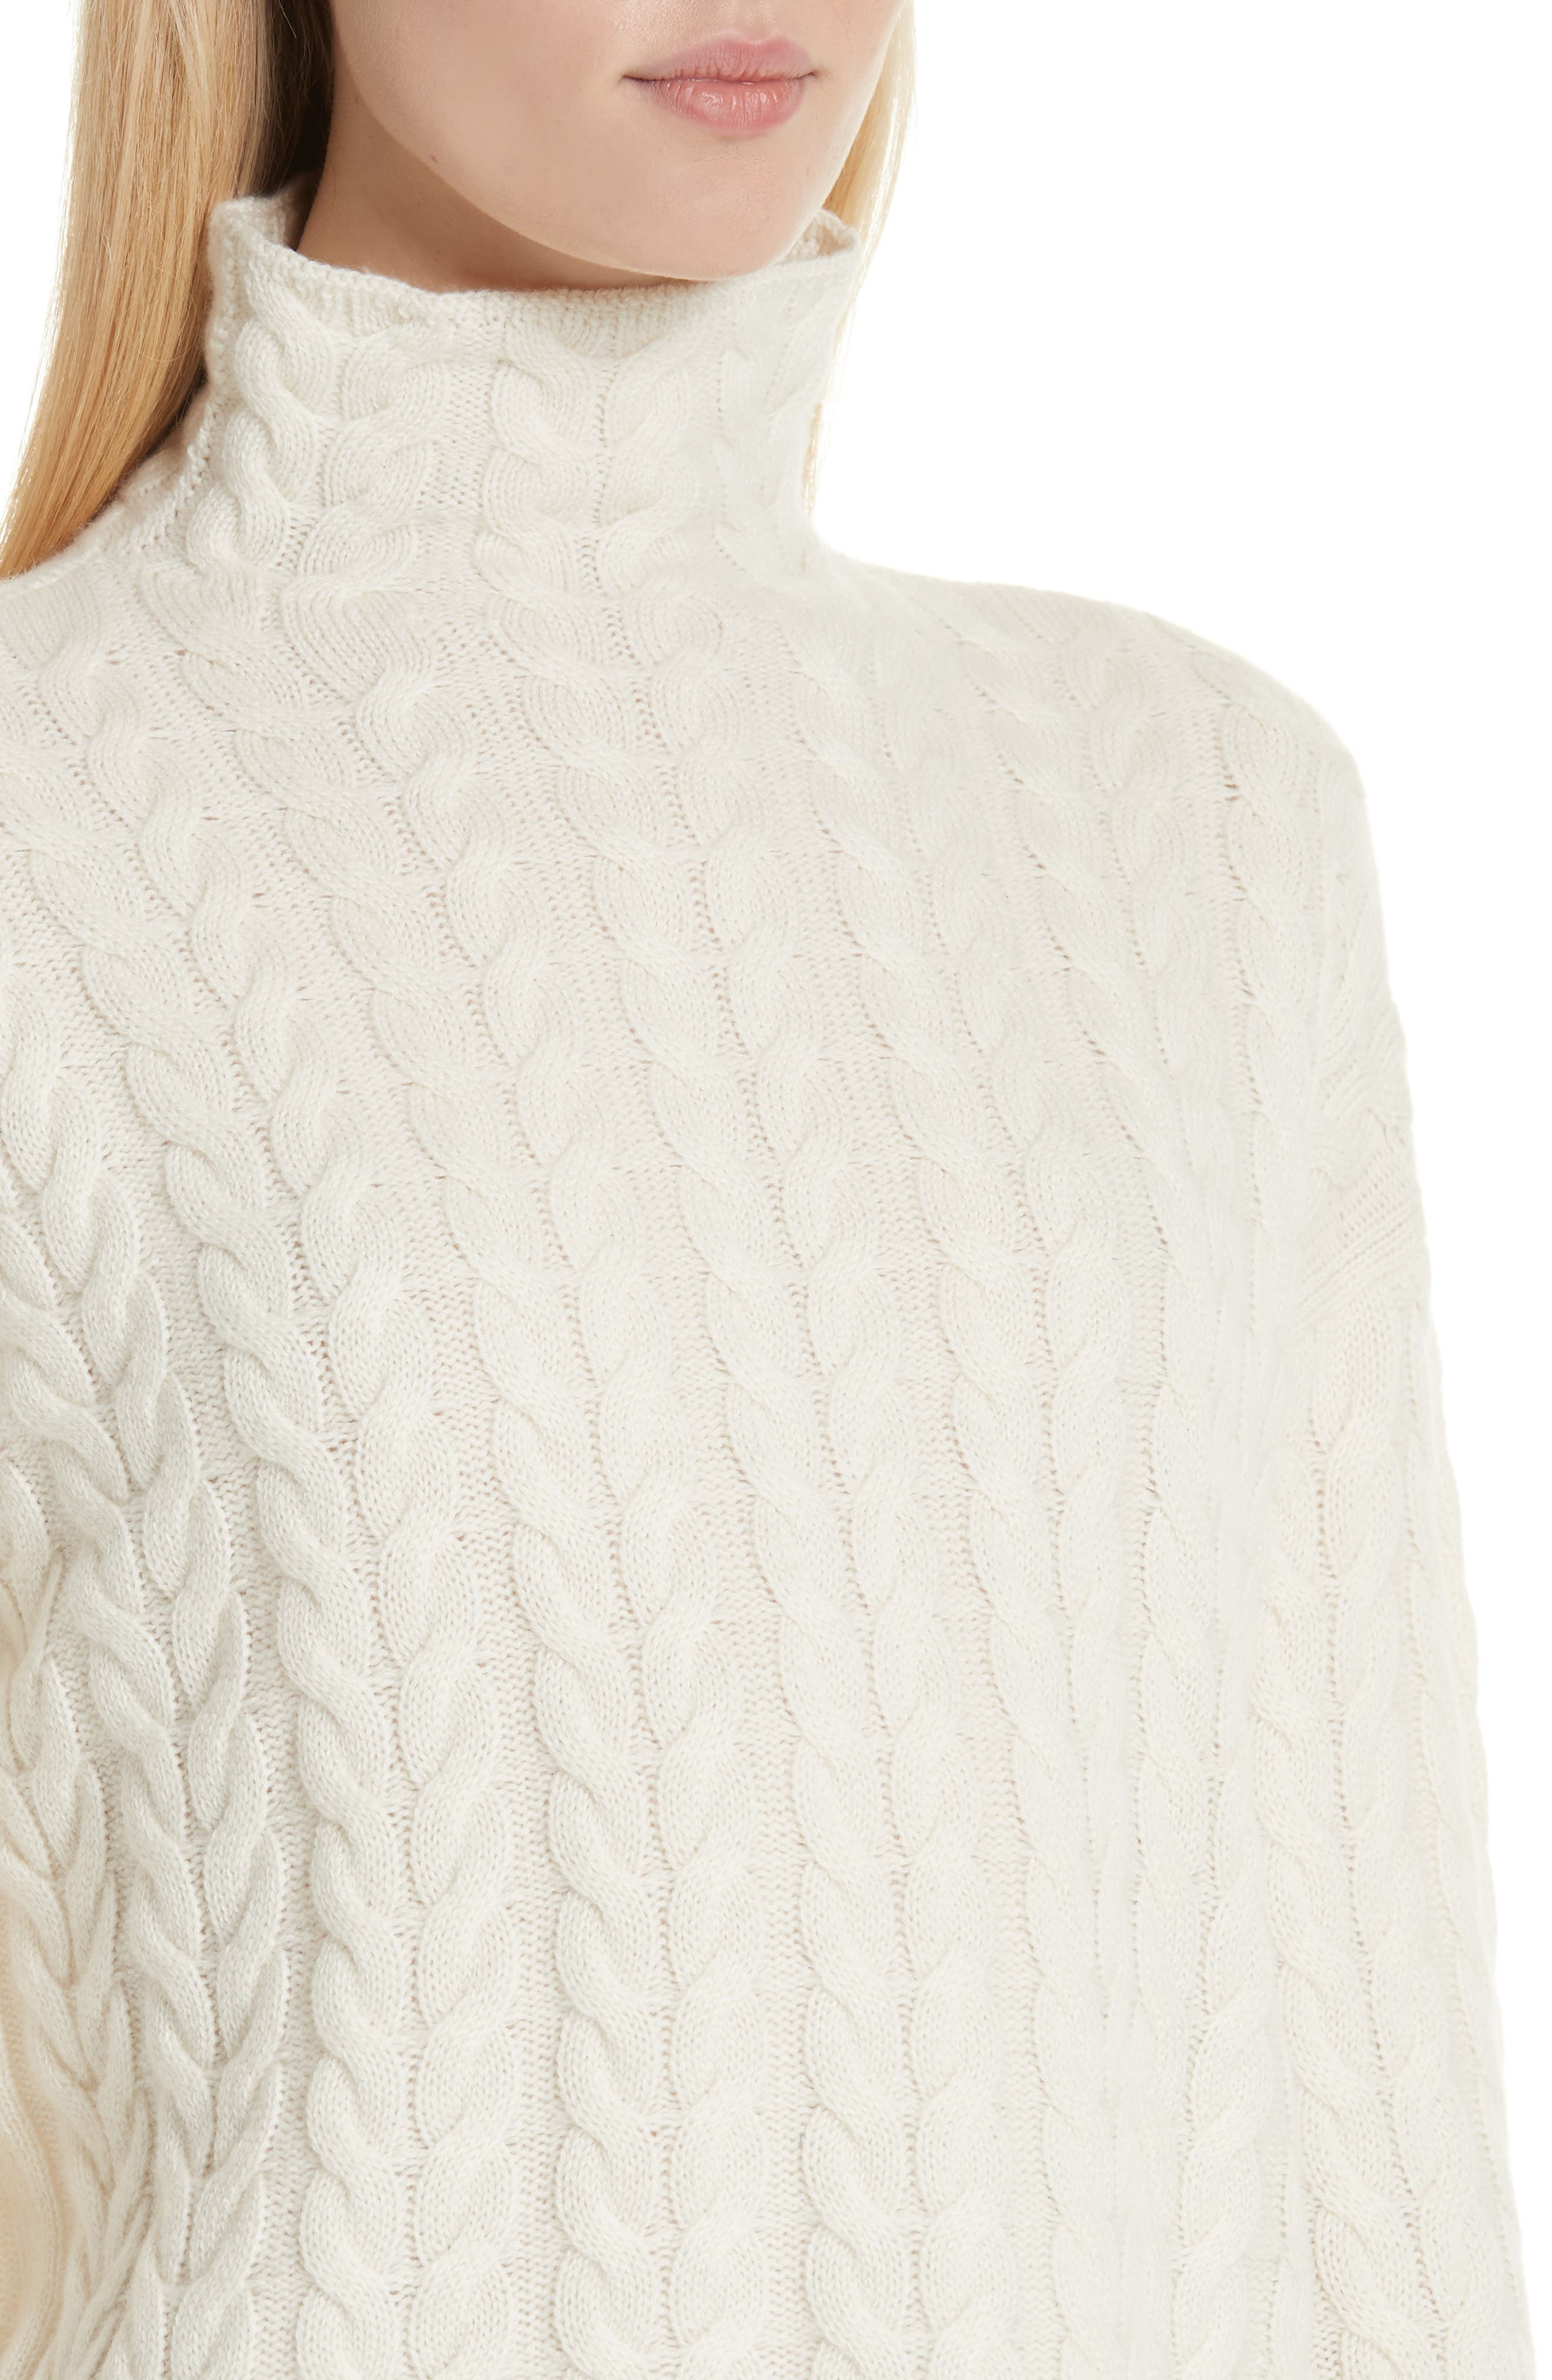 Cable Cashmere Sweater,                             Alternate thumbnail 4, color,                             IVORY/ IVORY